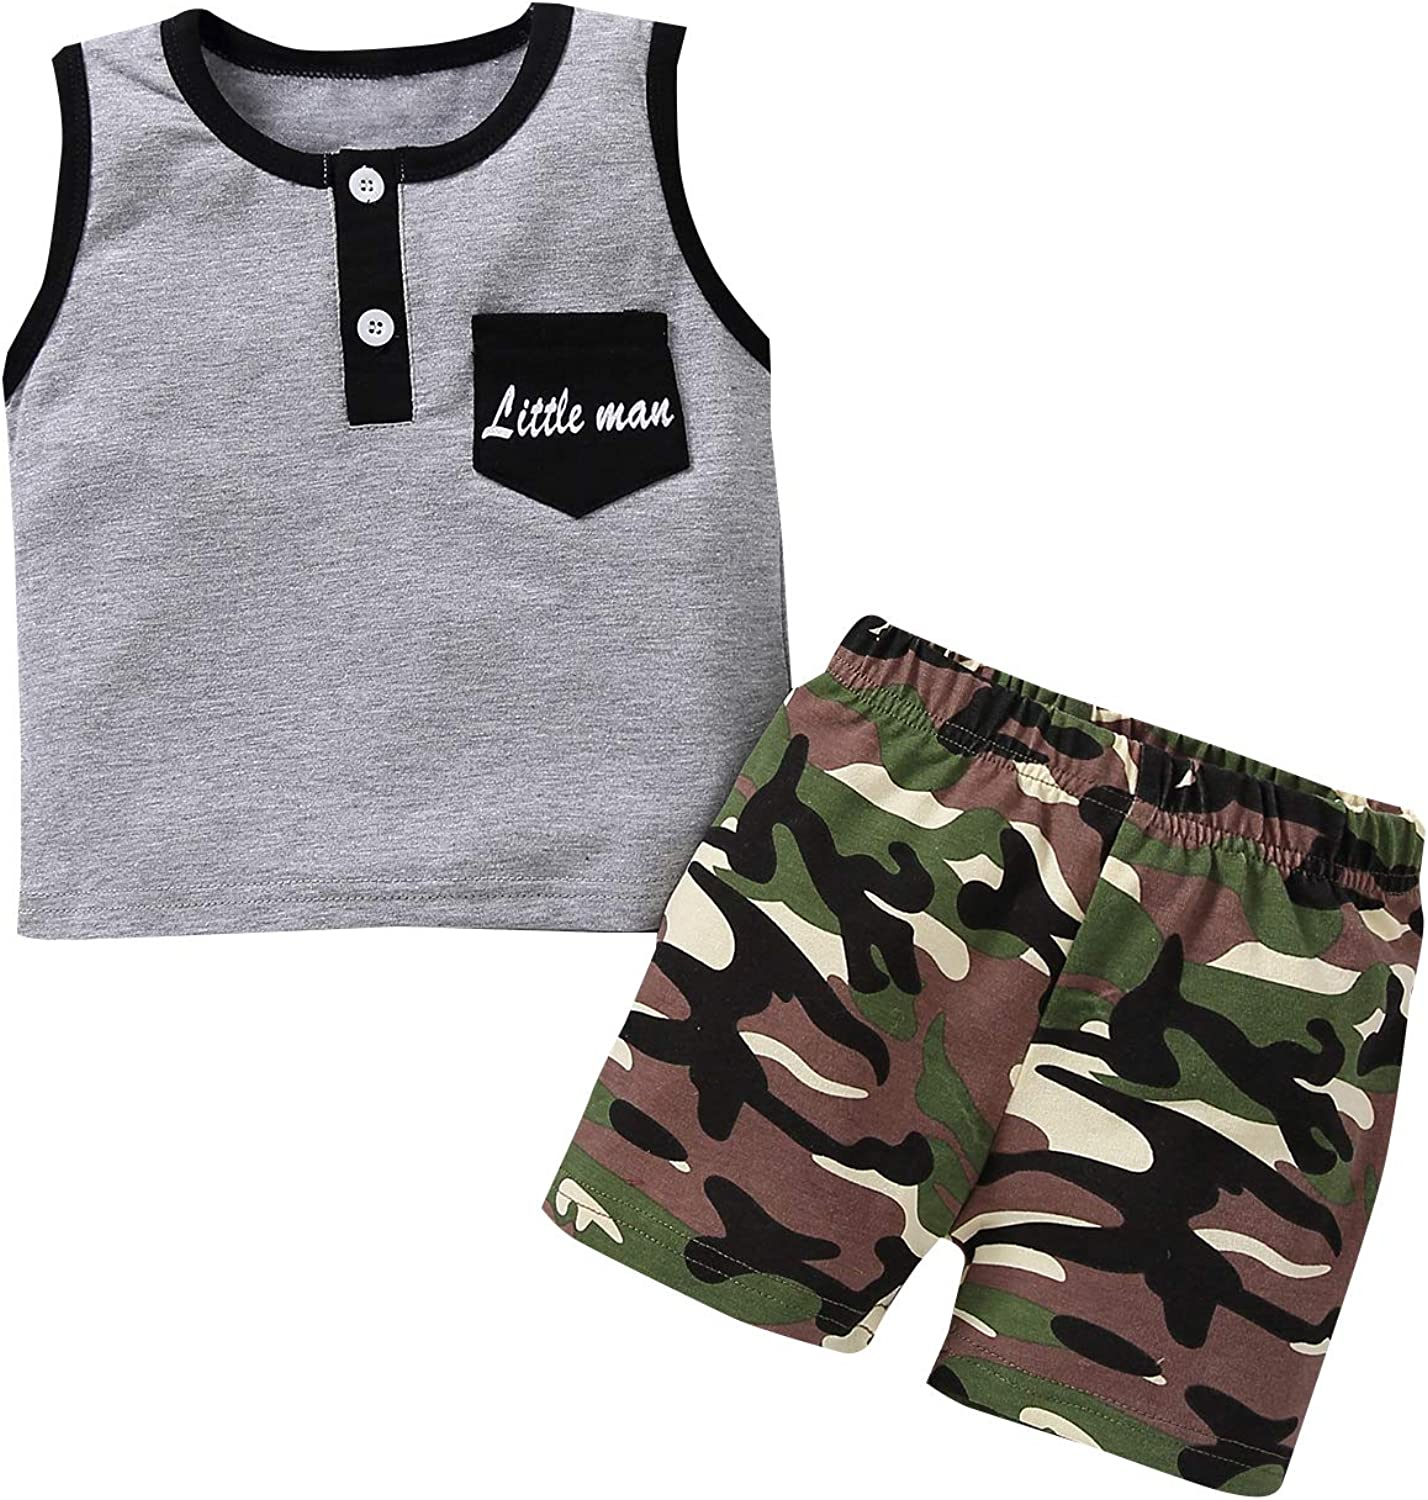 Toddler Jacksonville Mall Kids Baby Boy Camouflage Outfit Top Print Tank Letter + Japan's largest assortment